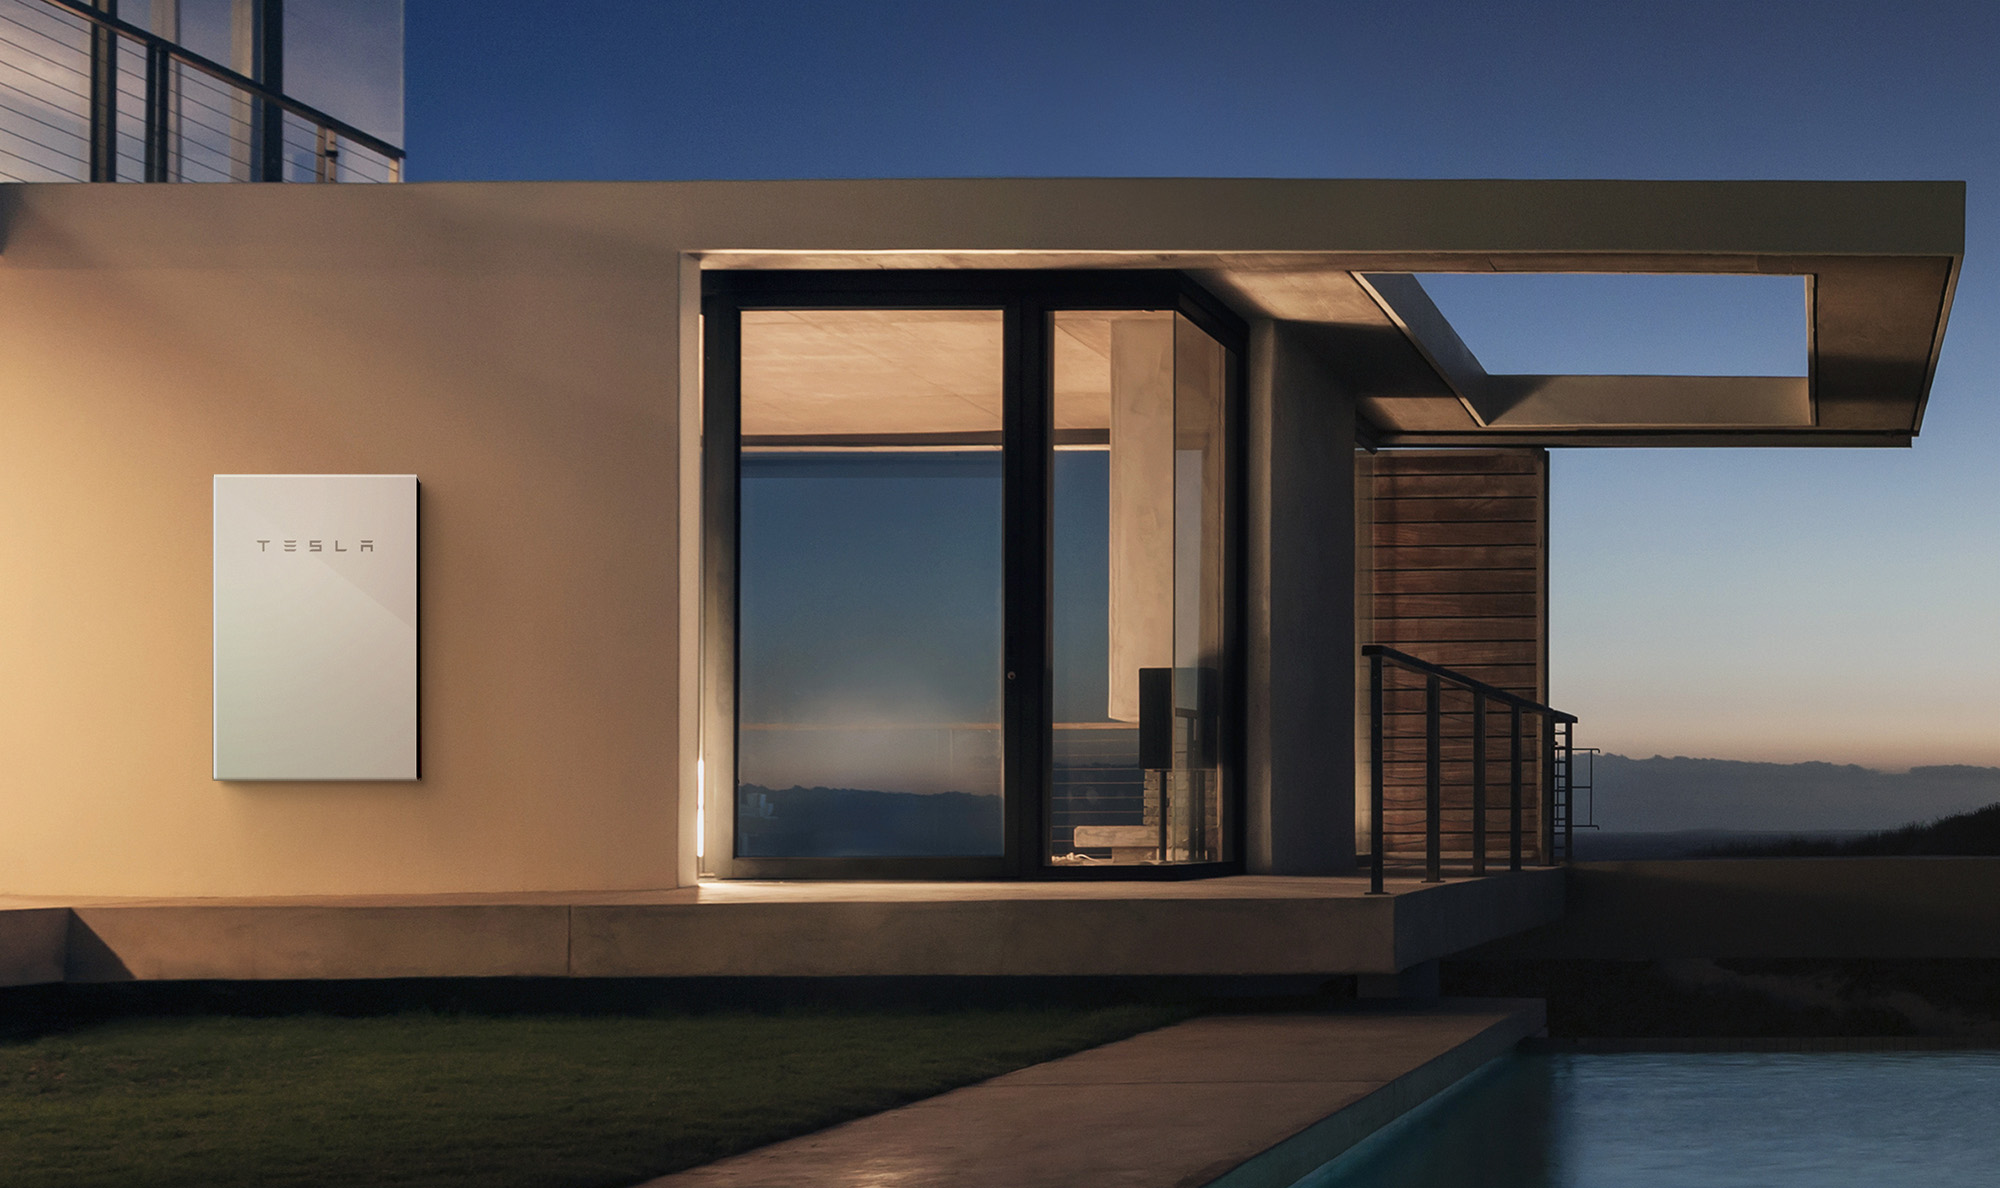 Storage Options - The Tesla Powerwall integrates with solar to store surplus energy generated during the day and makes it available when you need it, minimizing reliance on your utility.